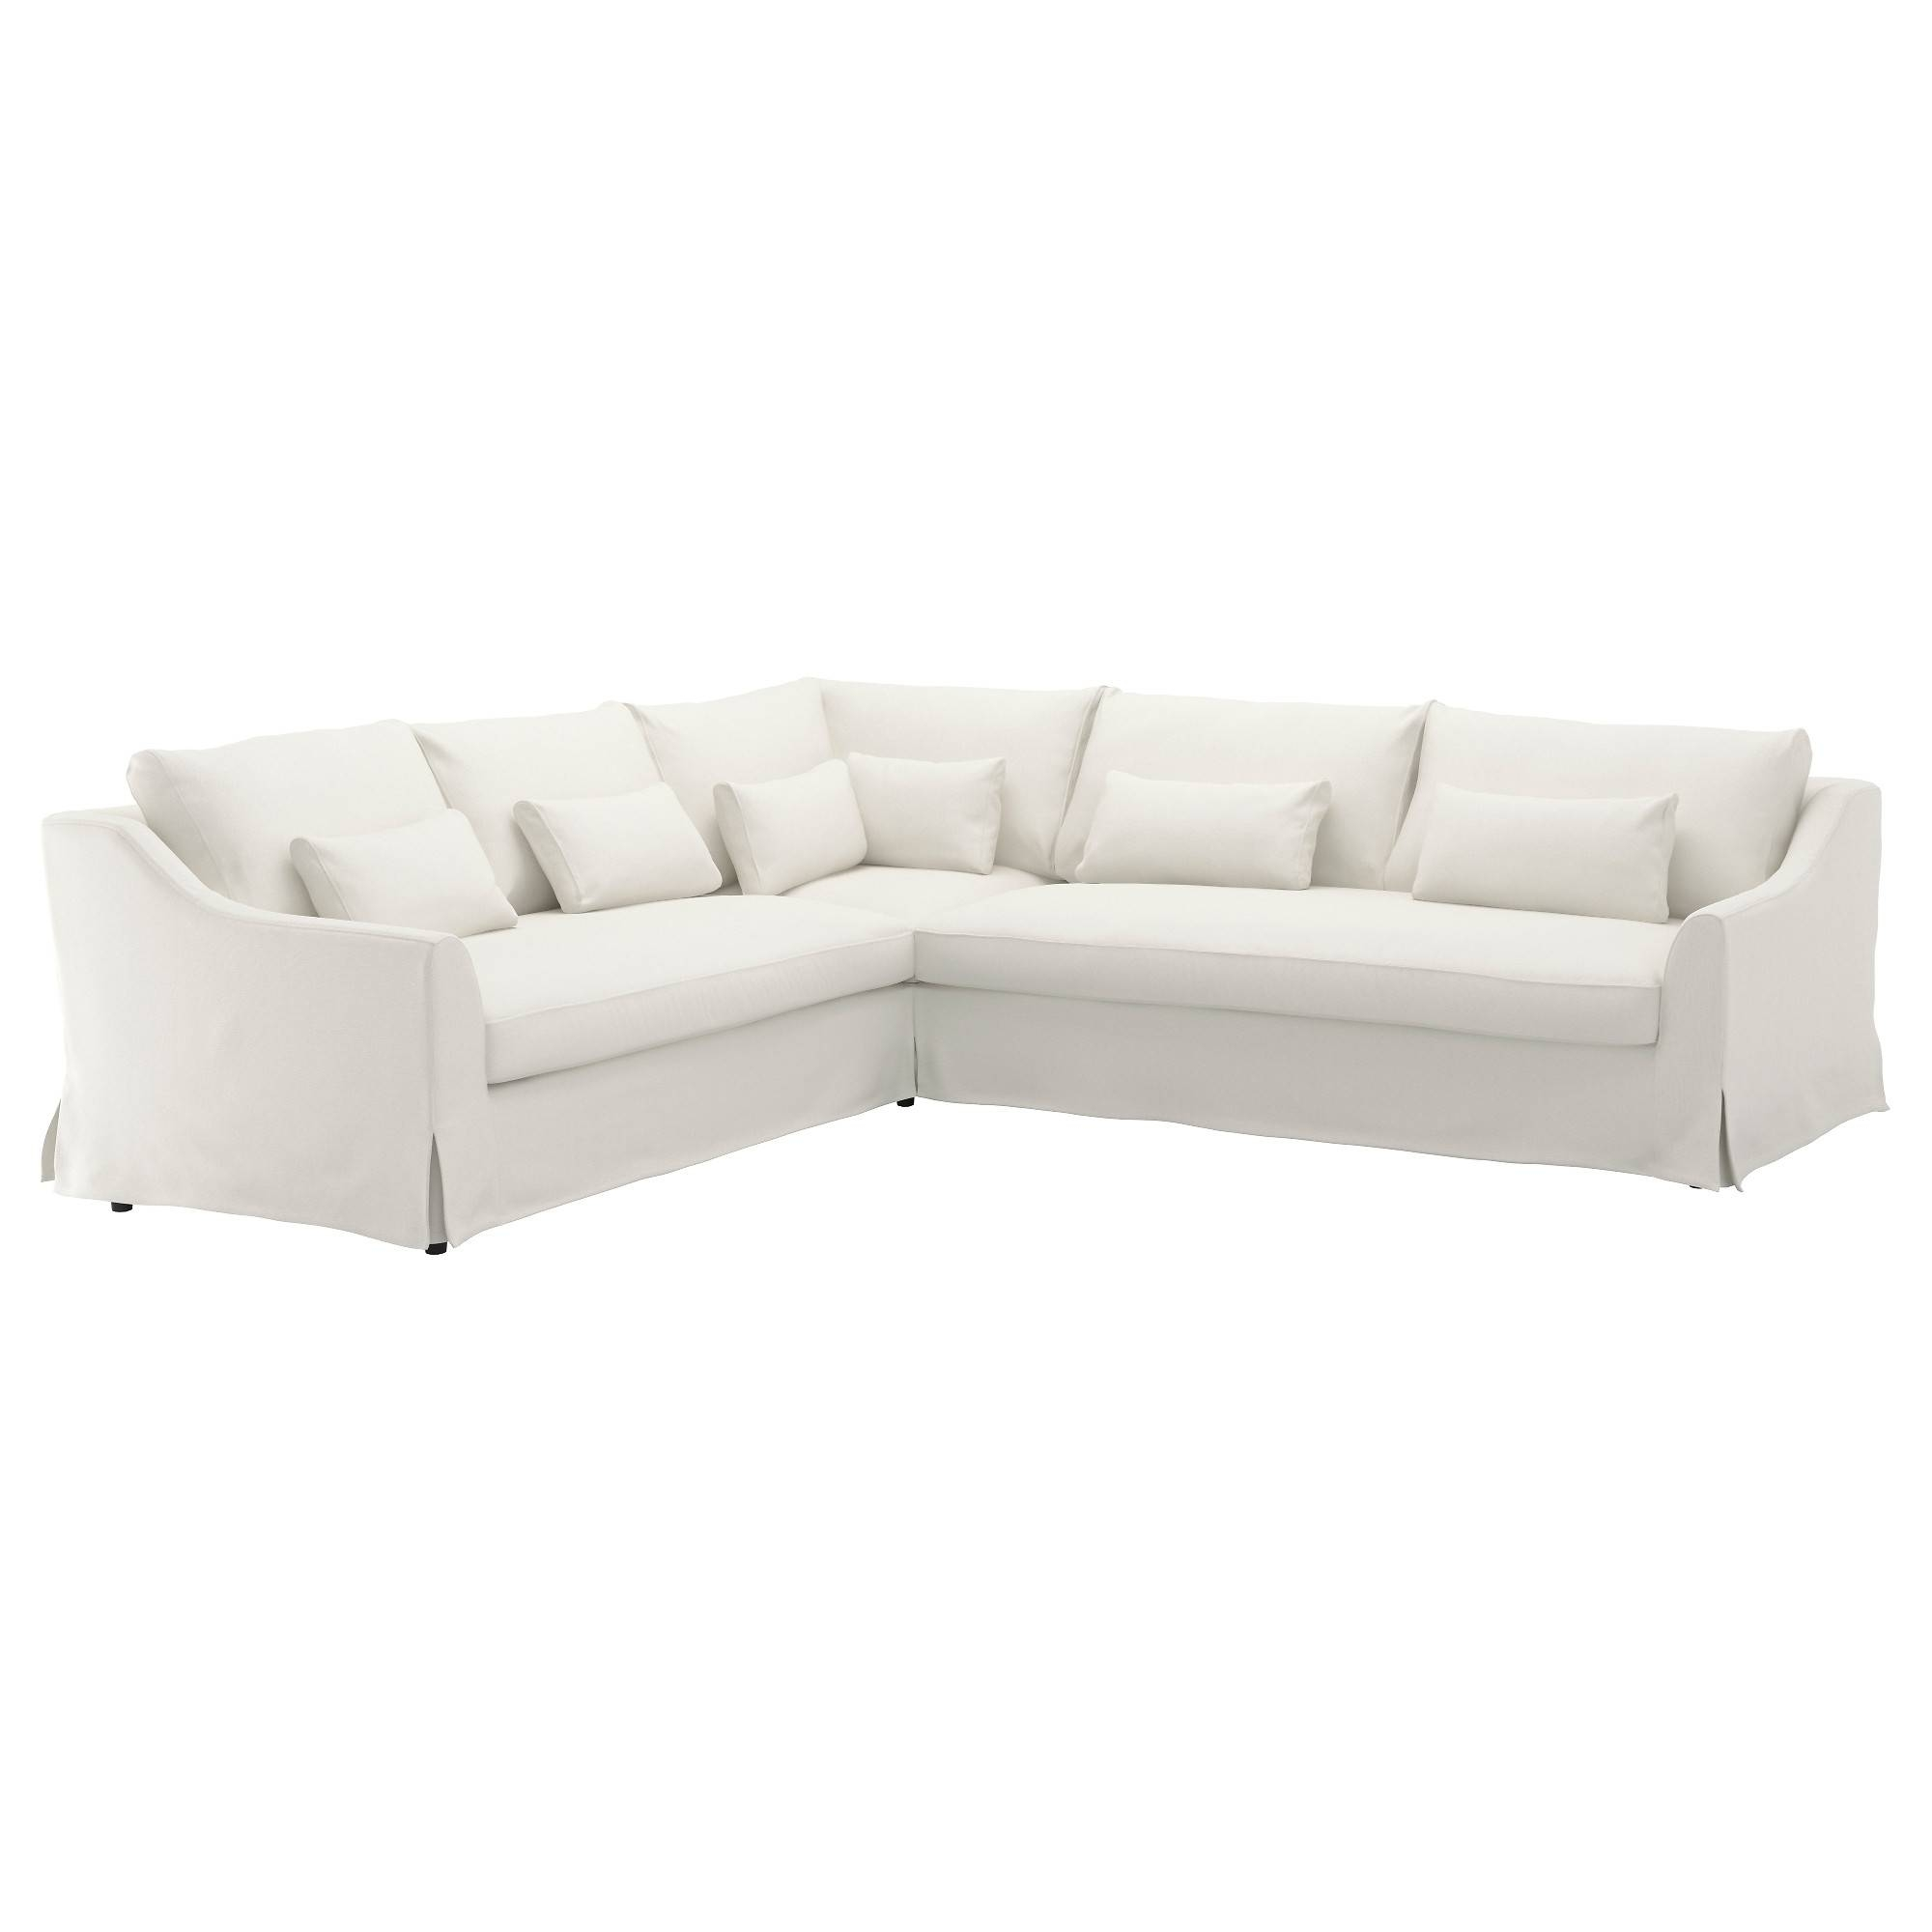 Fabric Sectional Sofas – Ikea With Regard To Ikea Sectional Sofa Sleeper (View 2 of 25)